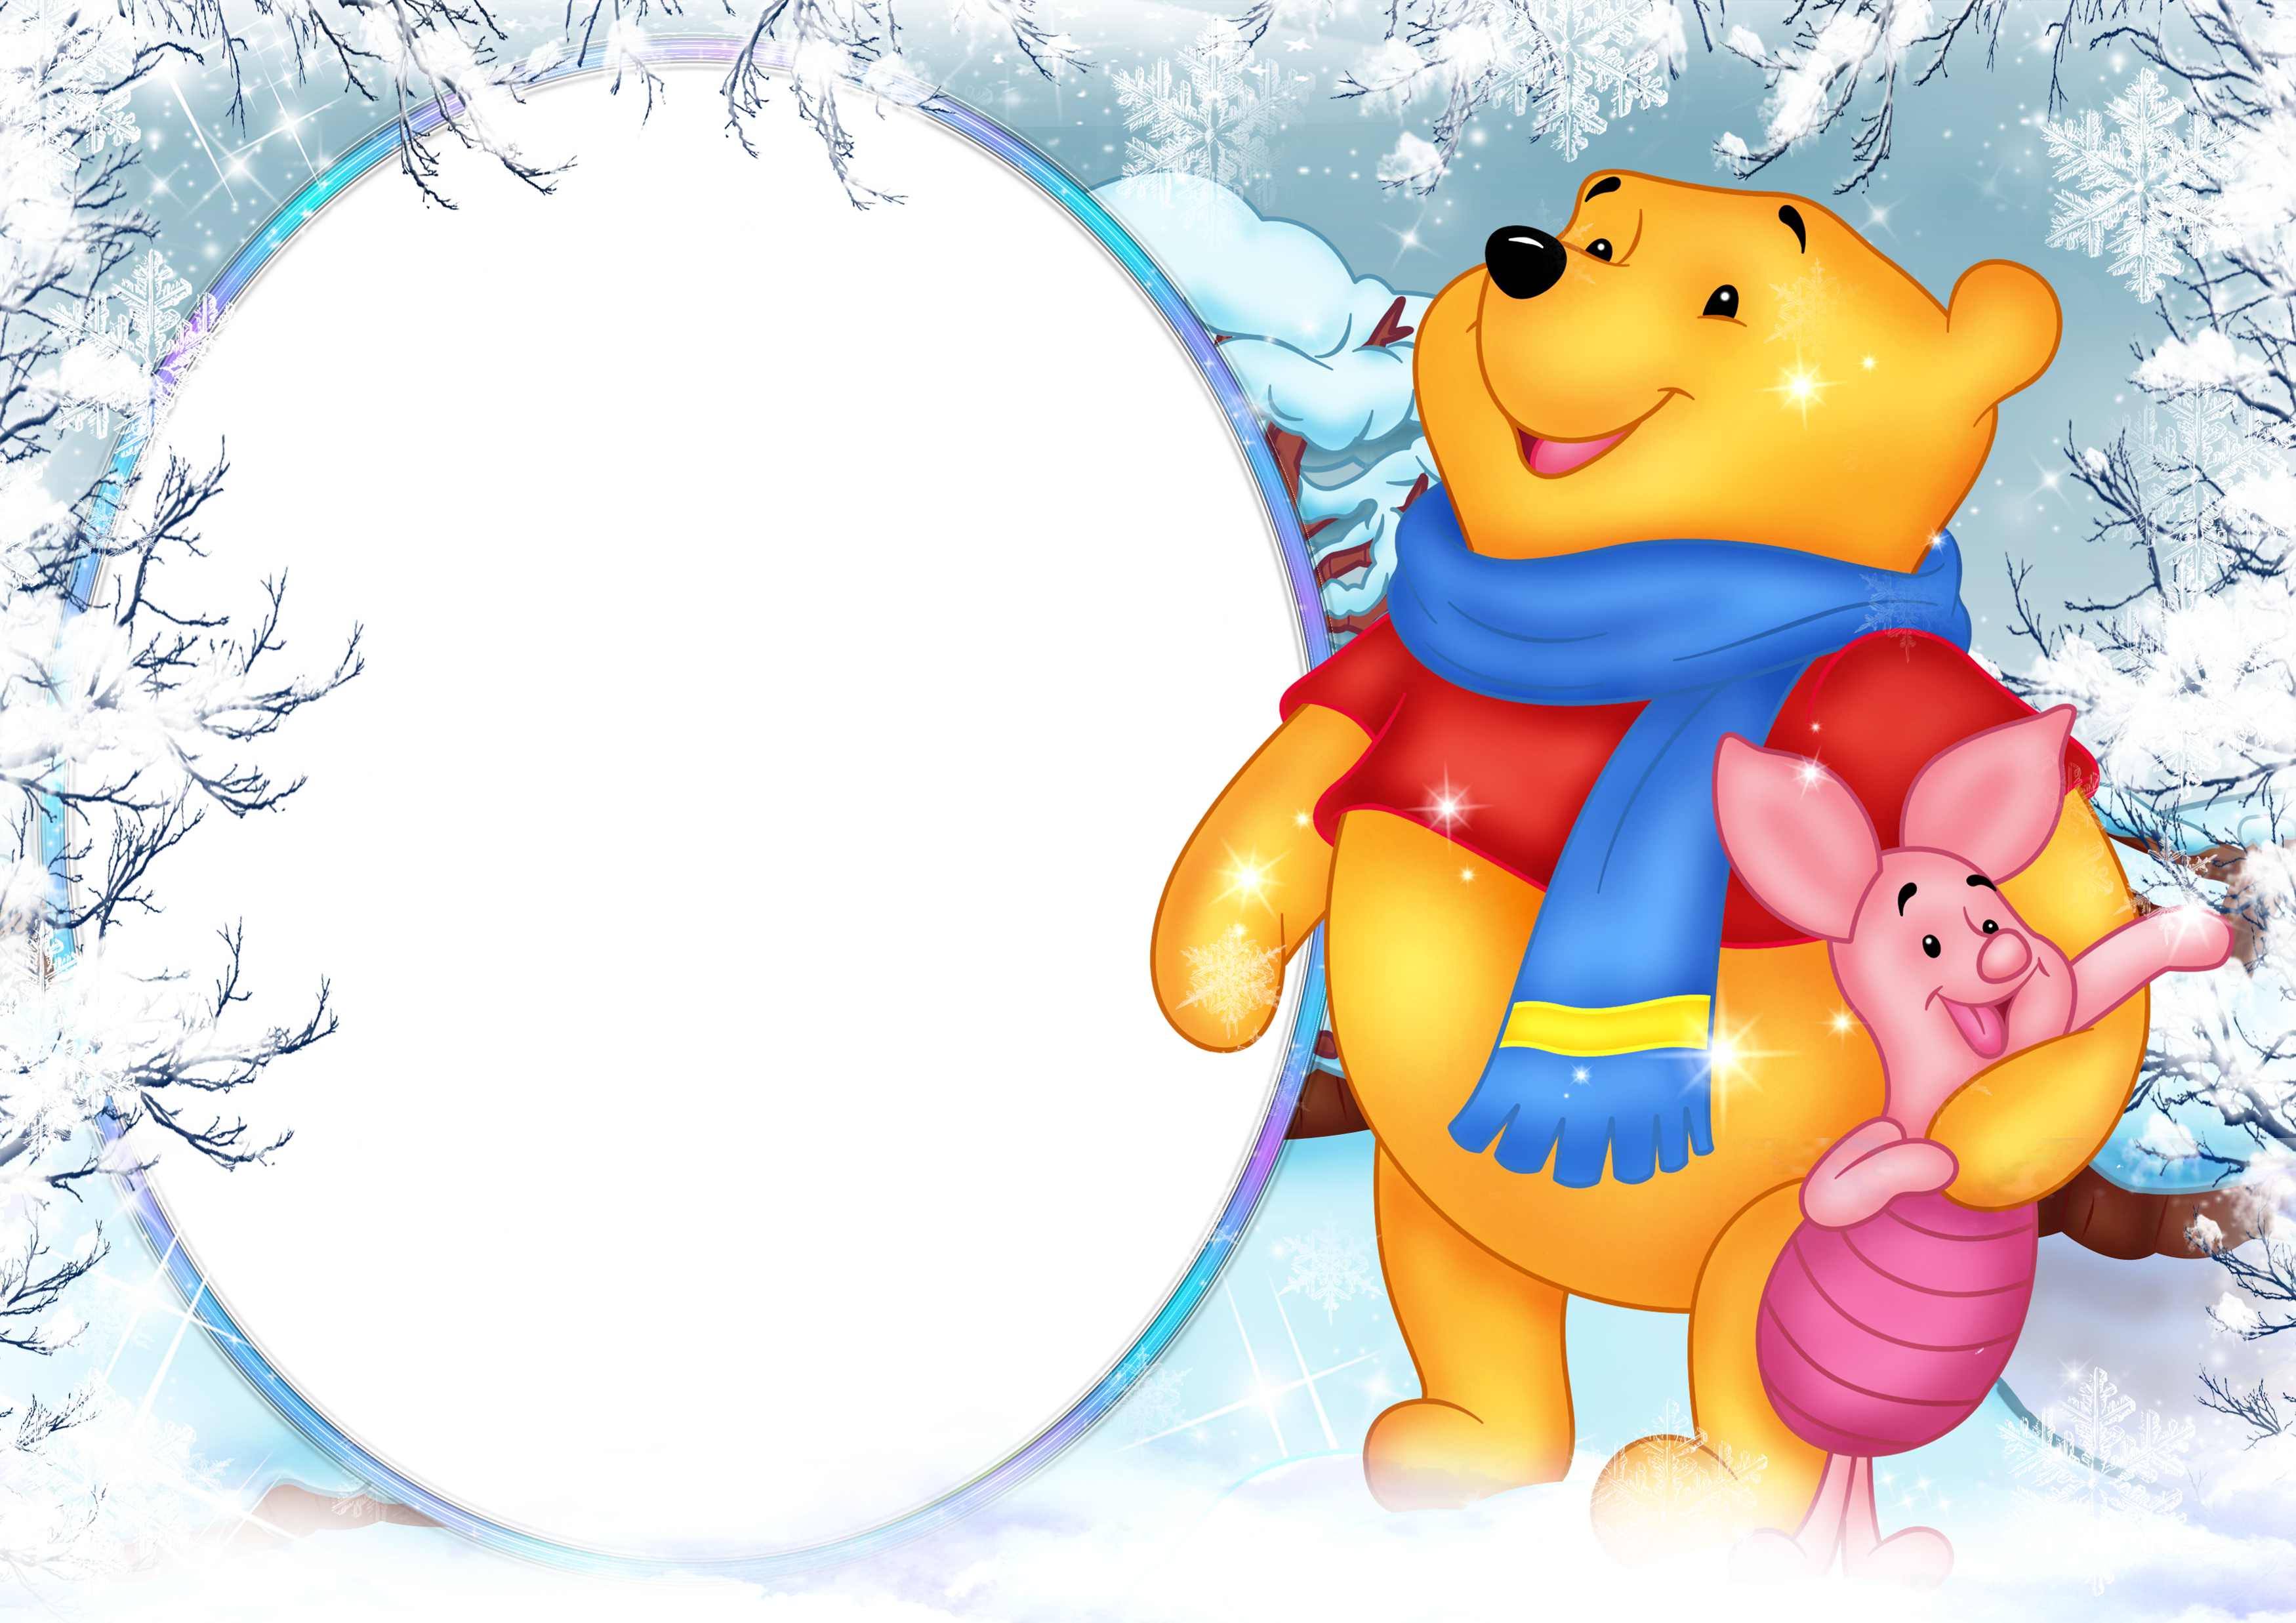 Winnie the pooh png. Winter clipart holiday